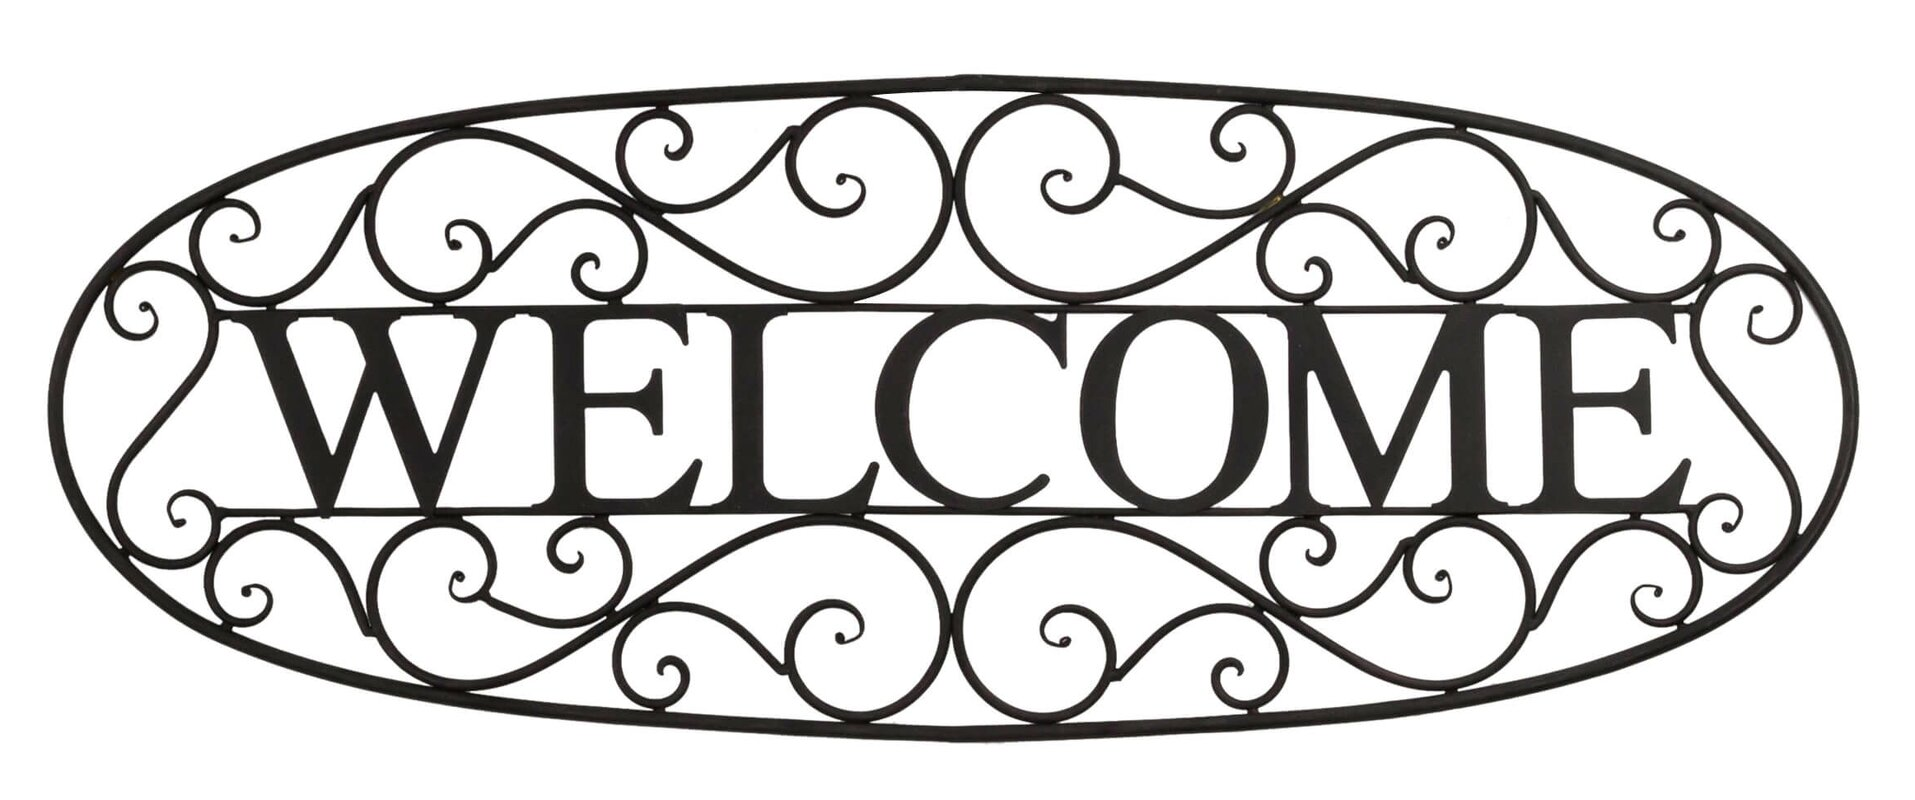 Black Wrought Iron Wall Decor Fascinating Bayaccents Welcome Sign Wrought Iron Wall Décor & Reviews  Wayfair Decorating Inspiration